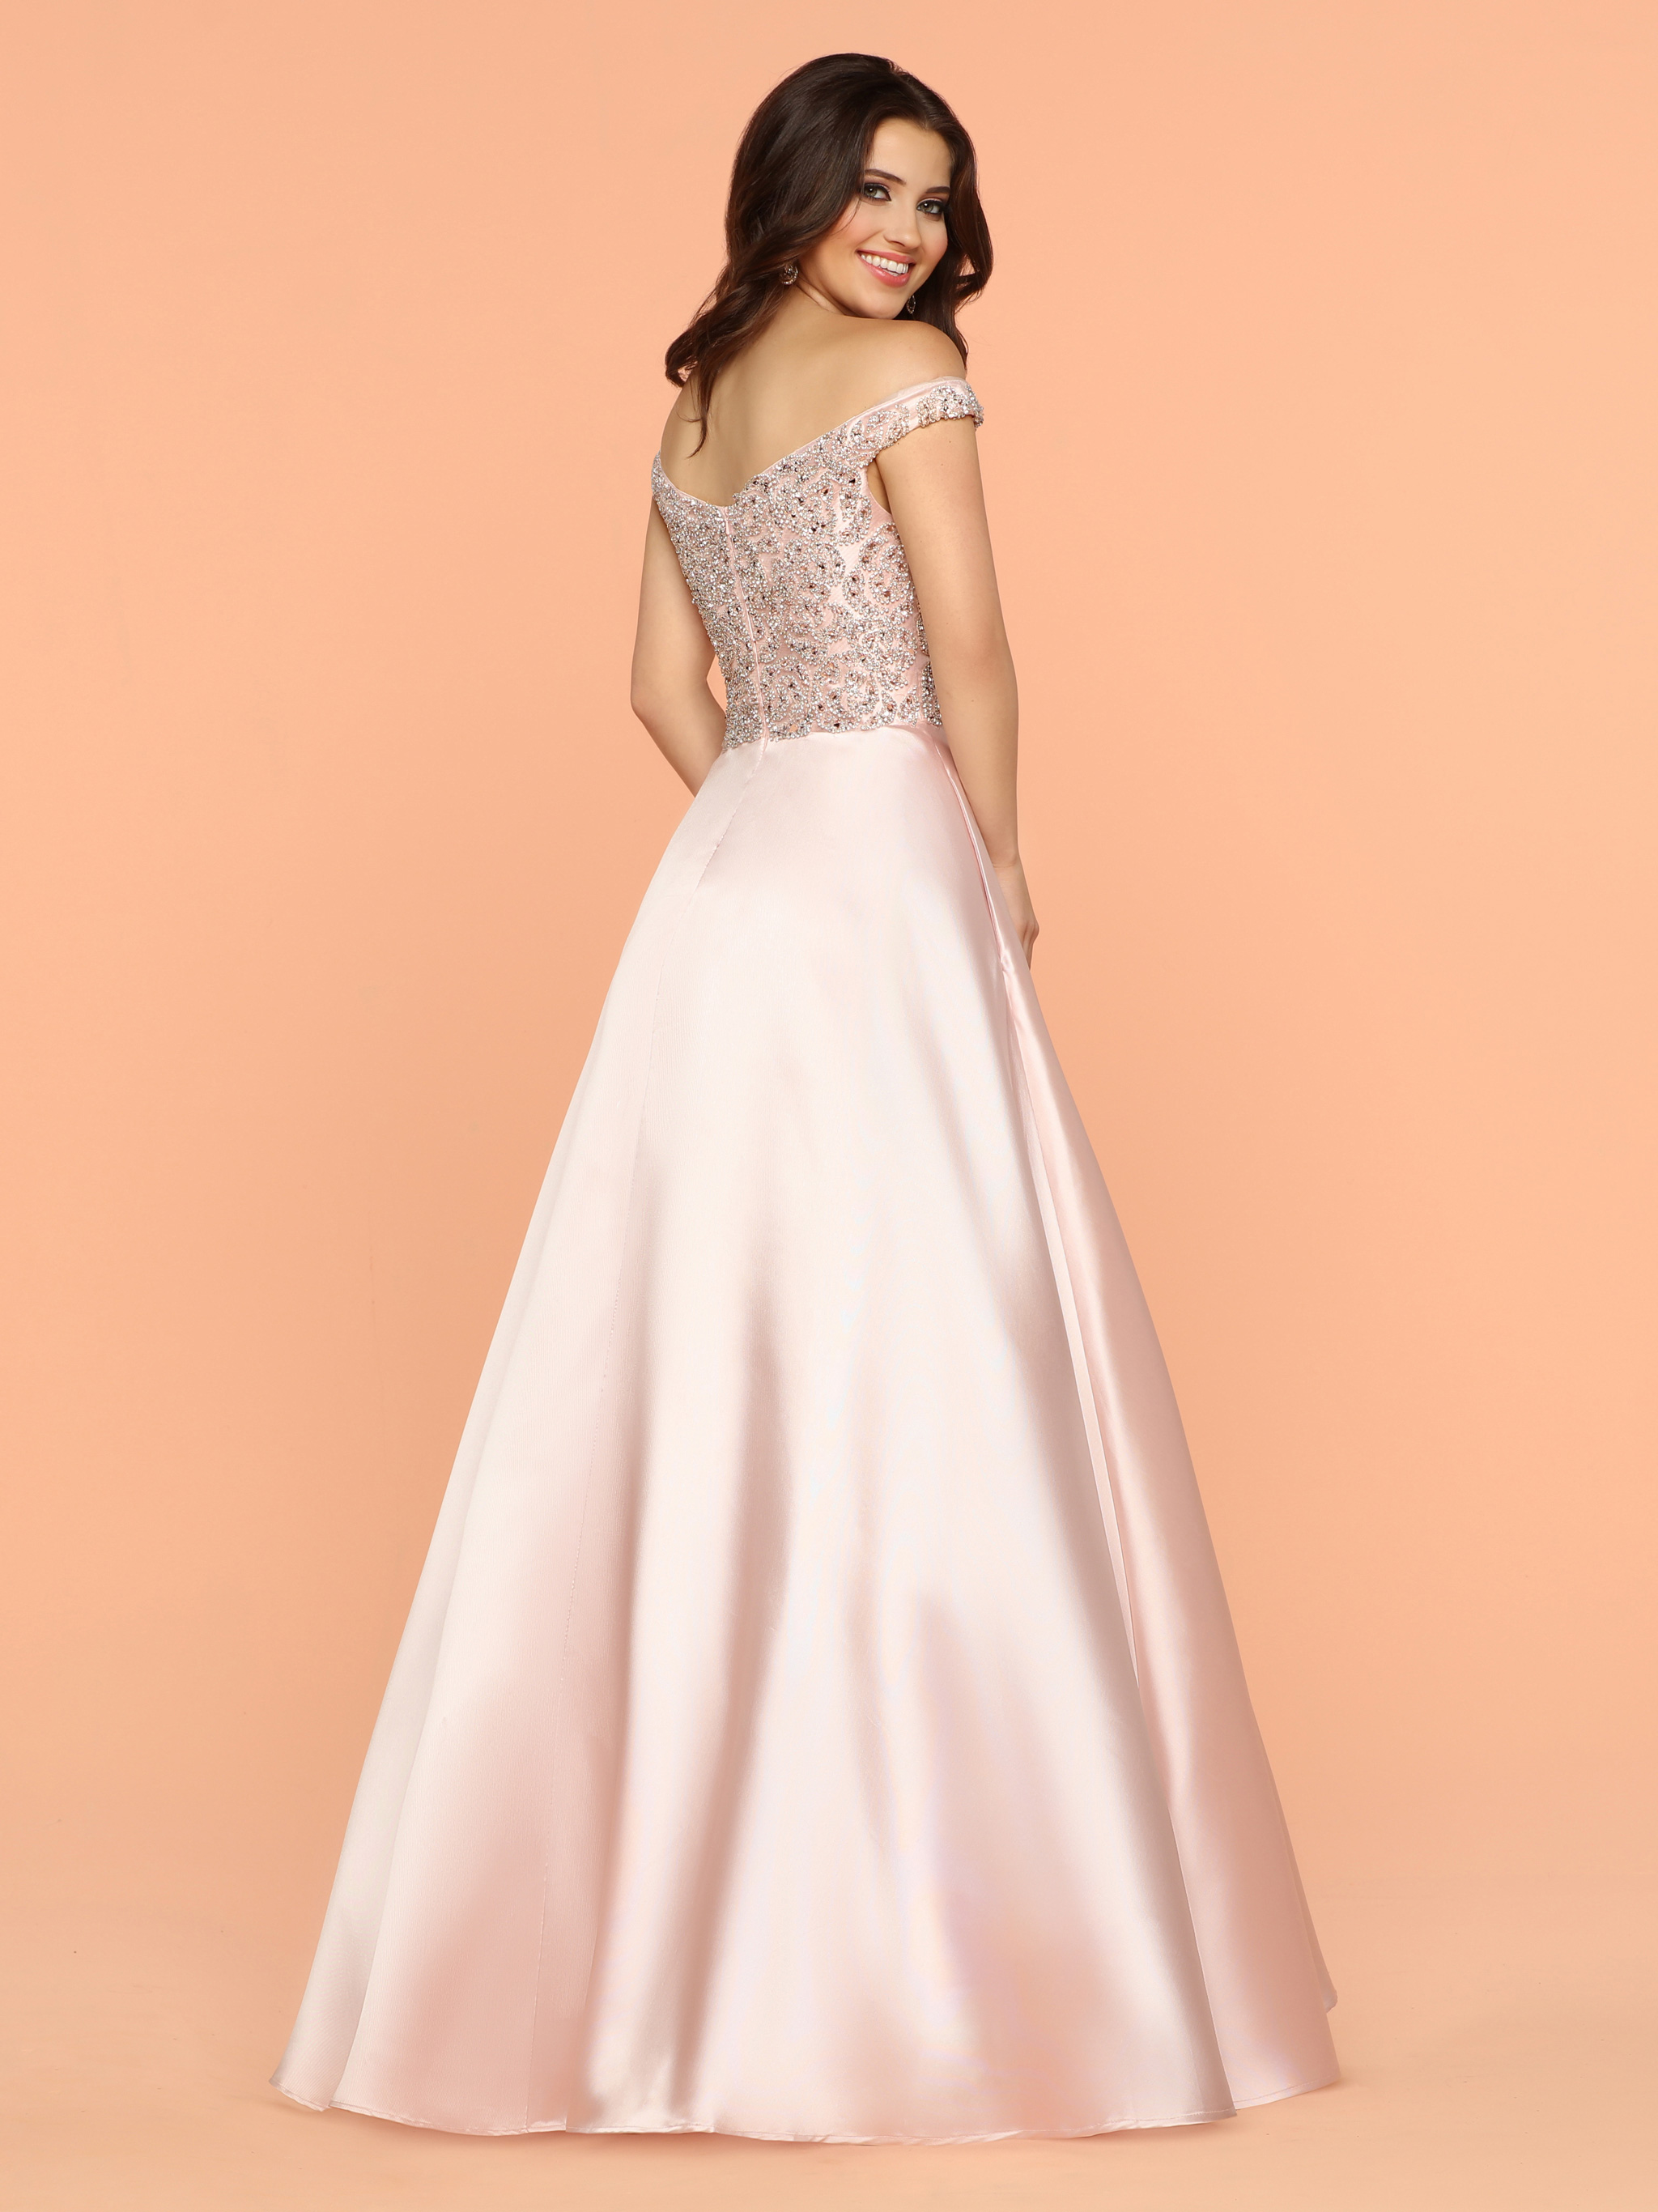 Image showing back view of style #71861